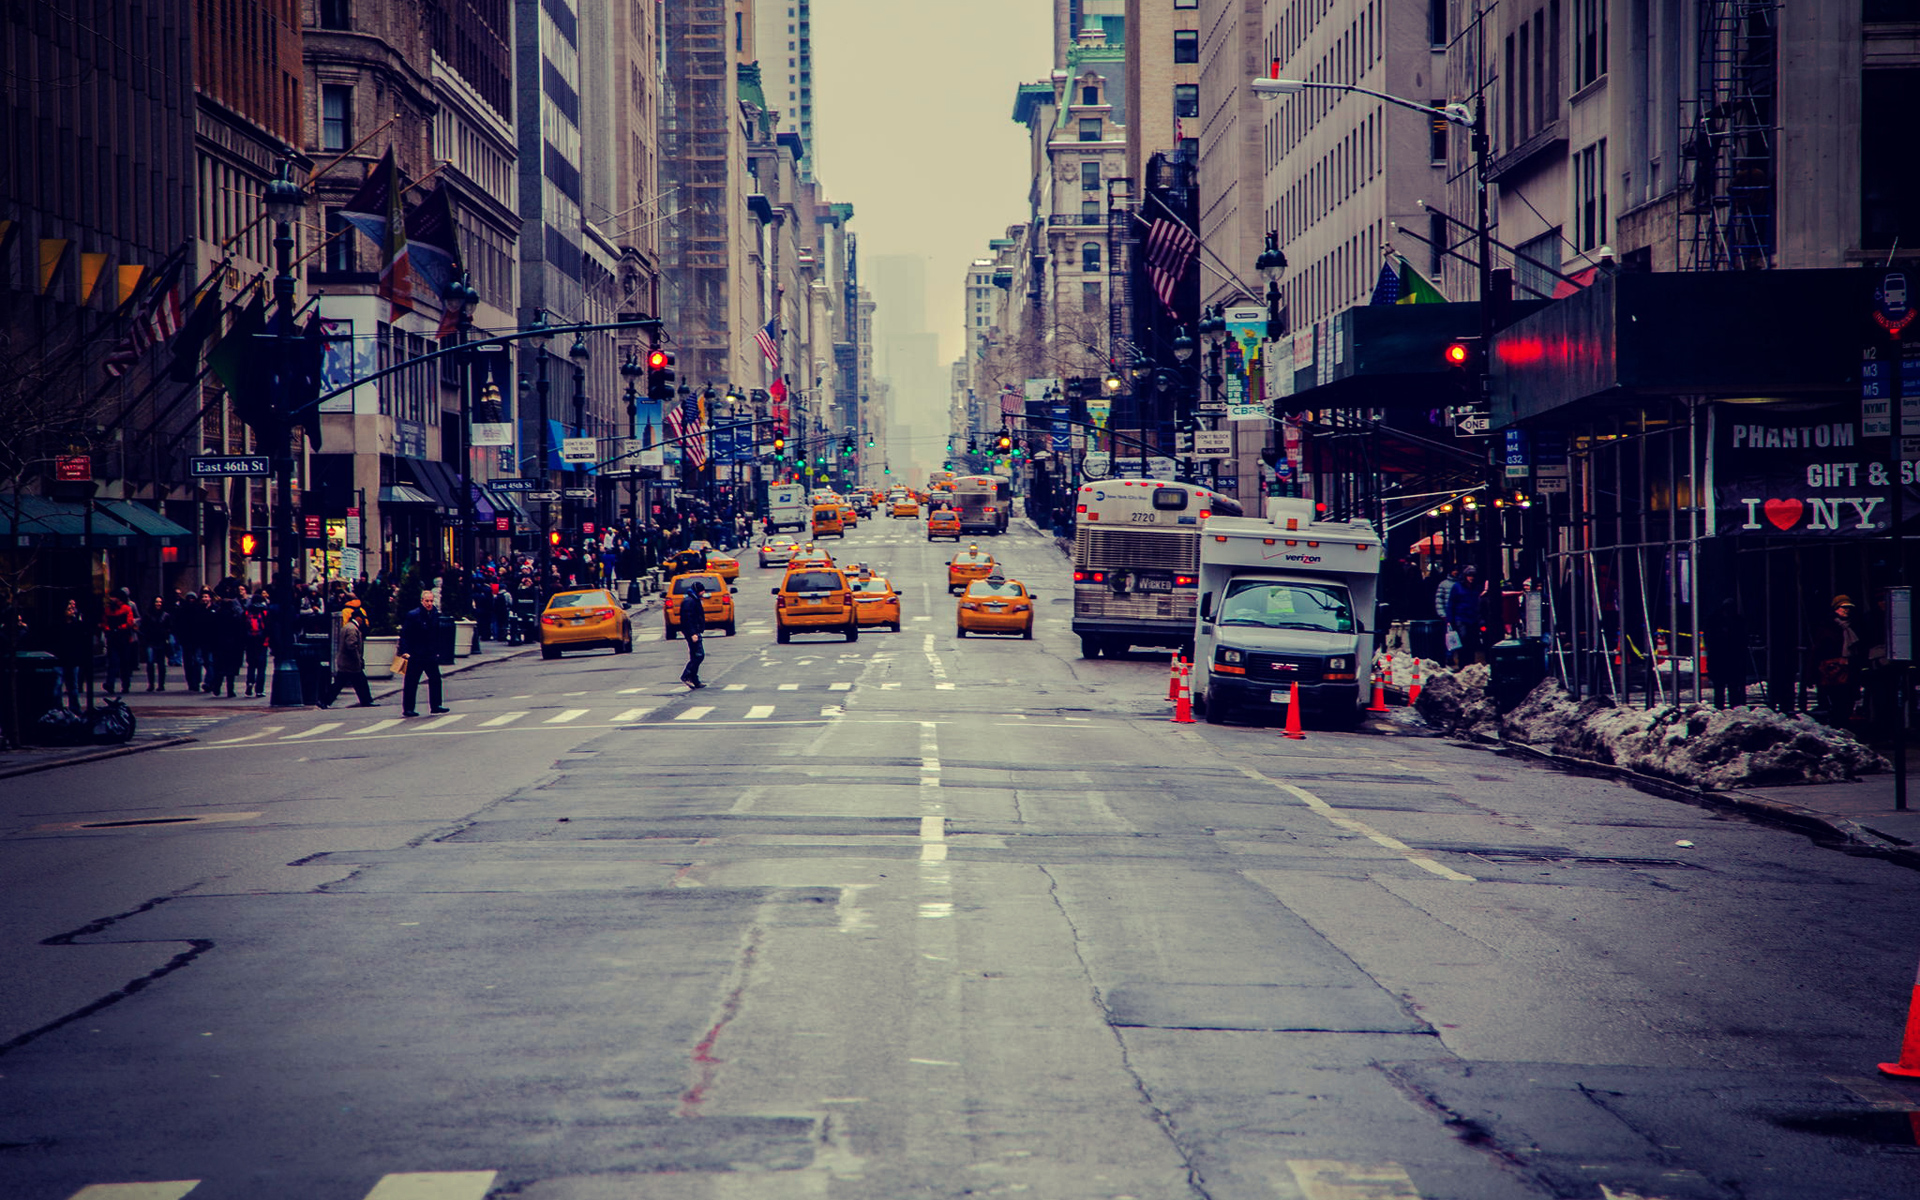 New York City Street Wallpaper - WallpaperSafari